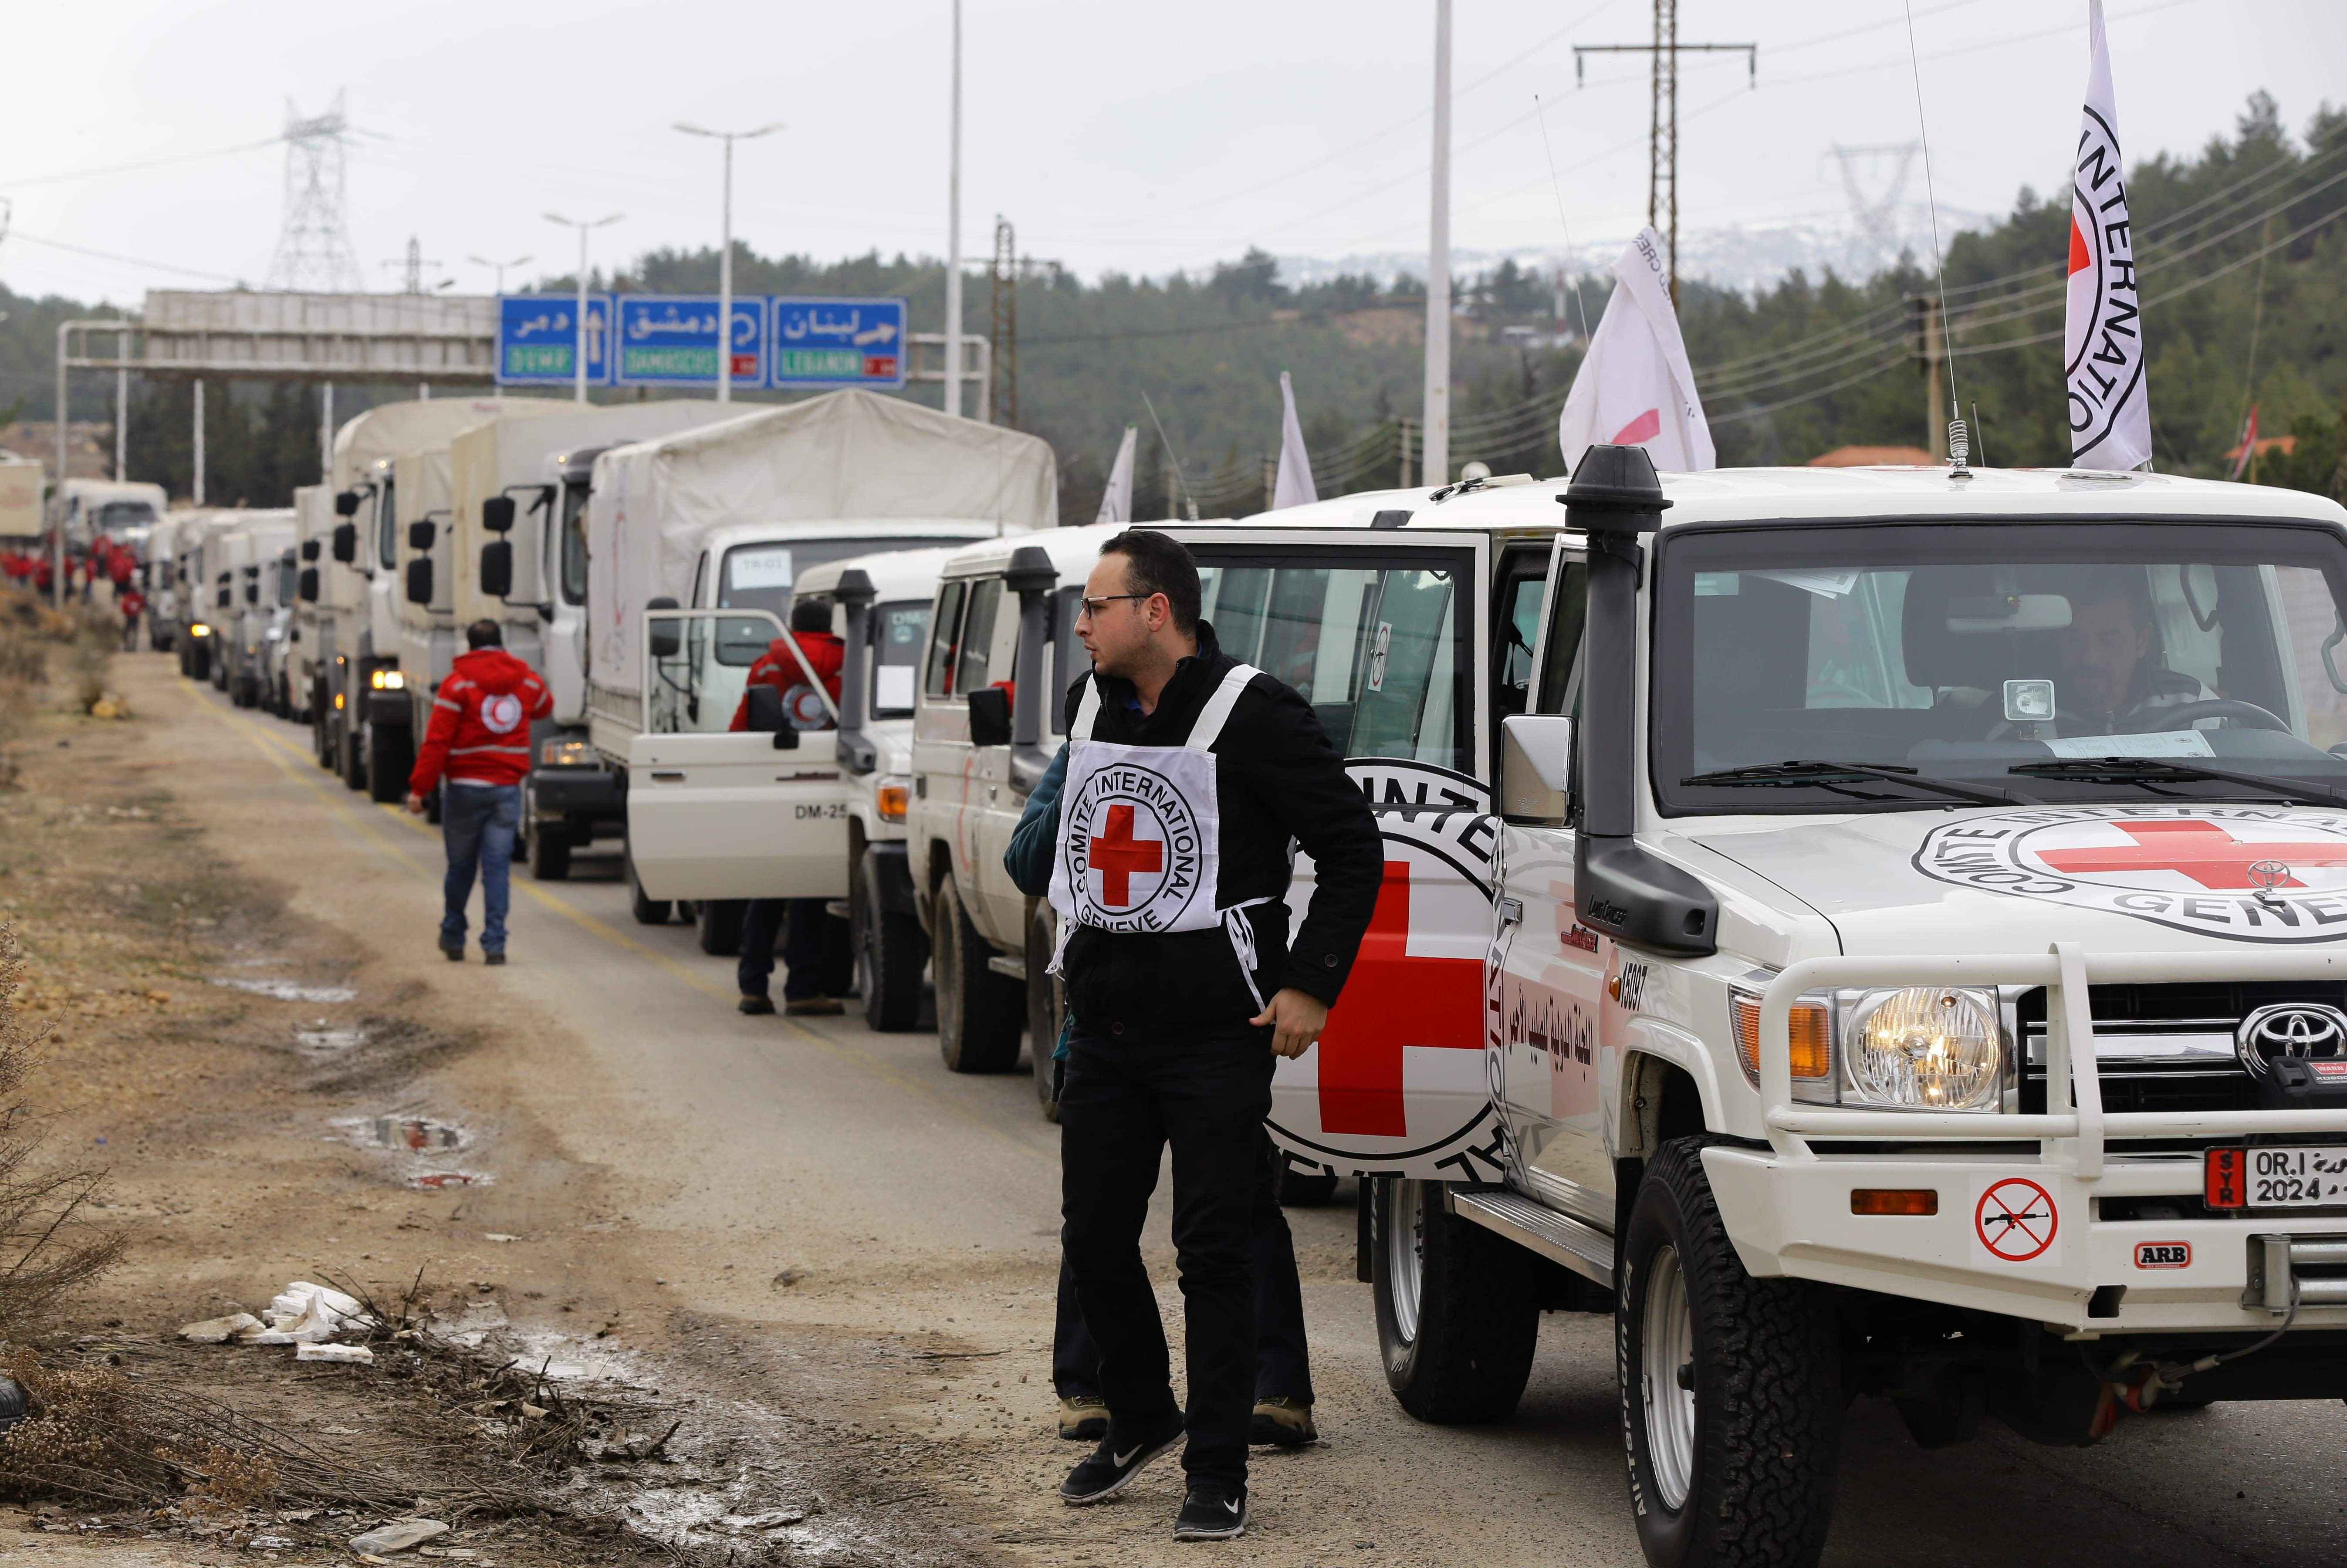 A convoy of aid from the International Committee of the Red Cross (ICRC) waits on the outskirts of the besieged rebel-held Syrian town of Madaya, on Jan. 11, 2016.